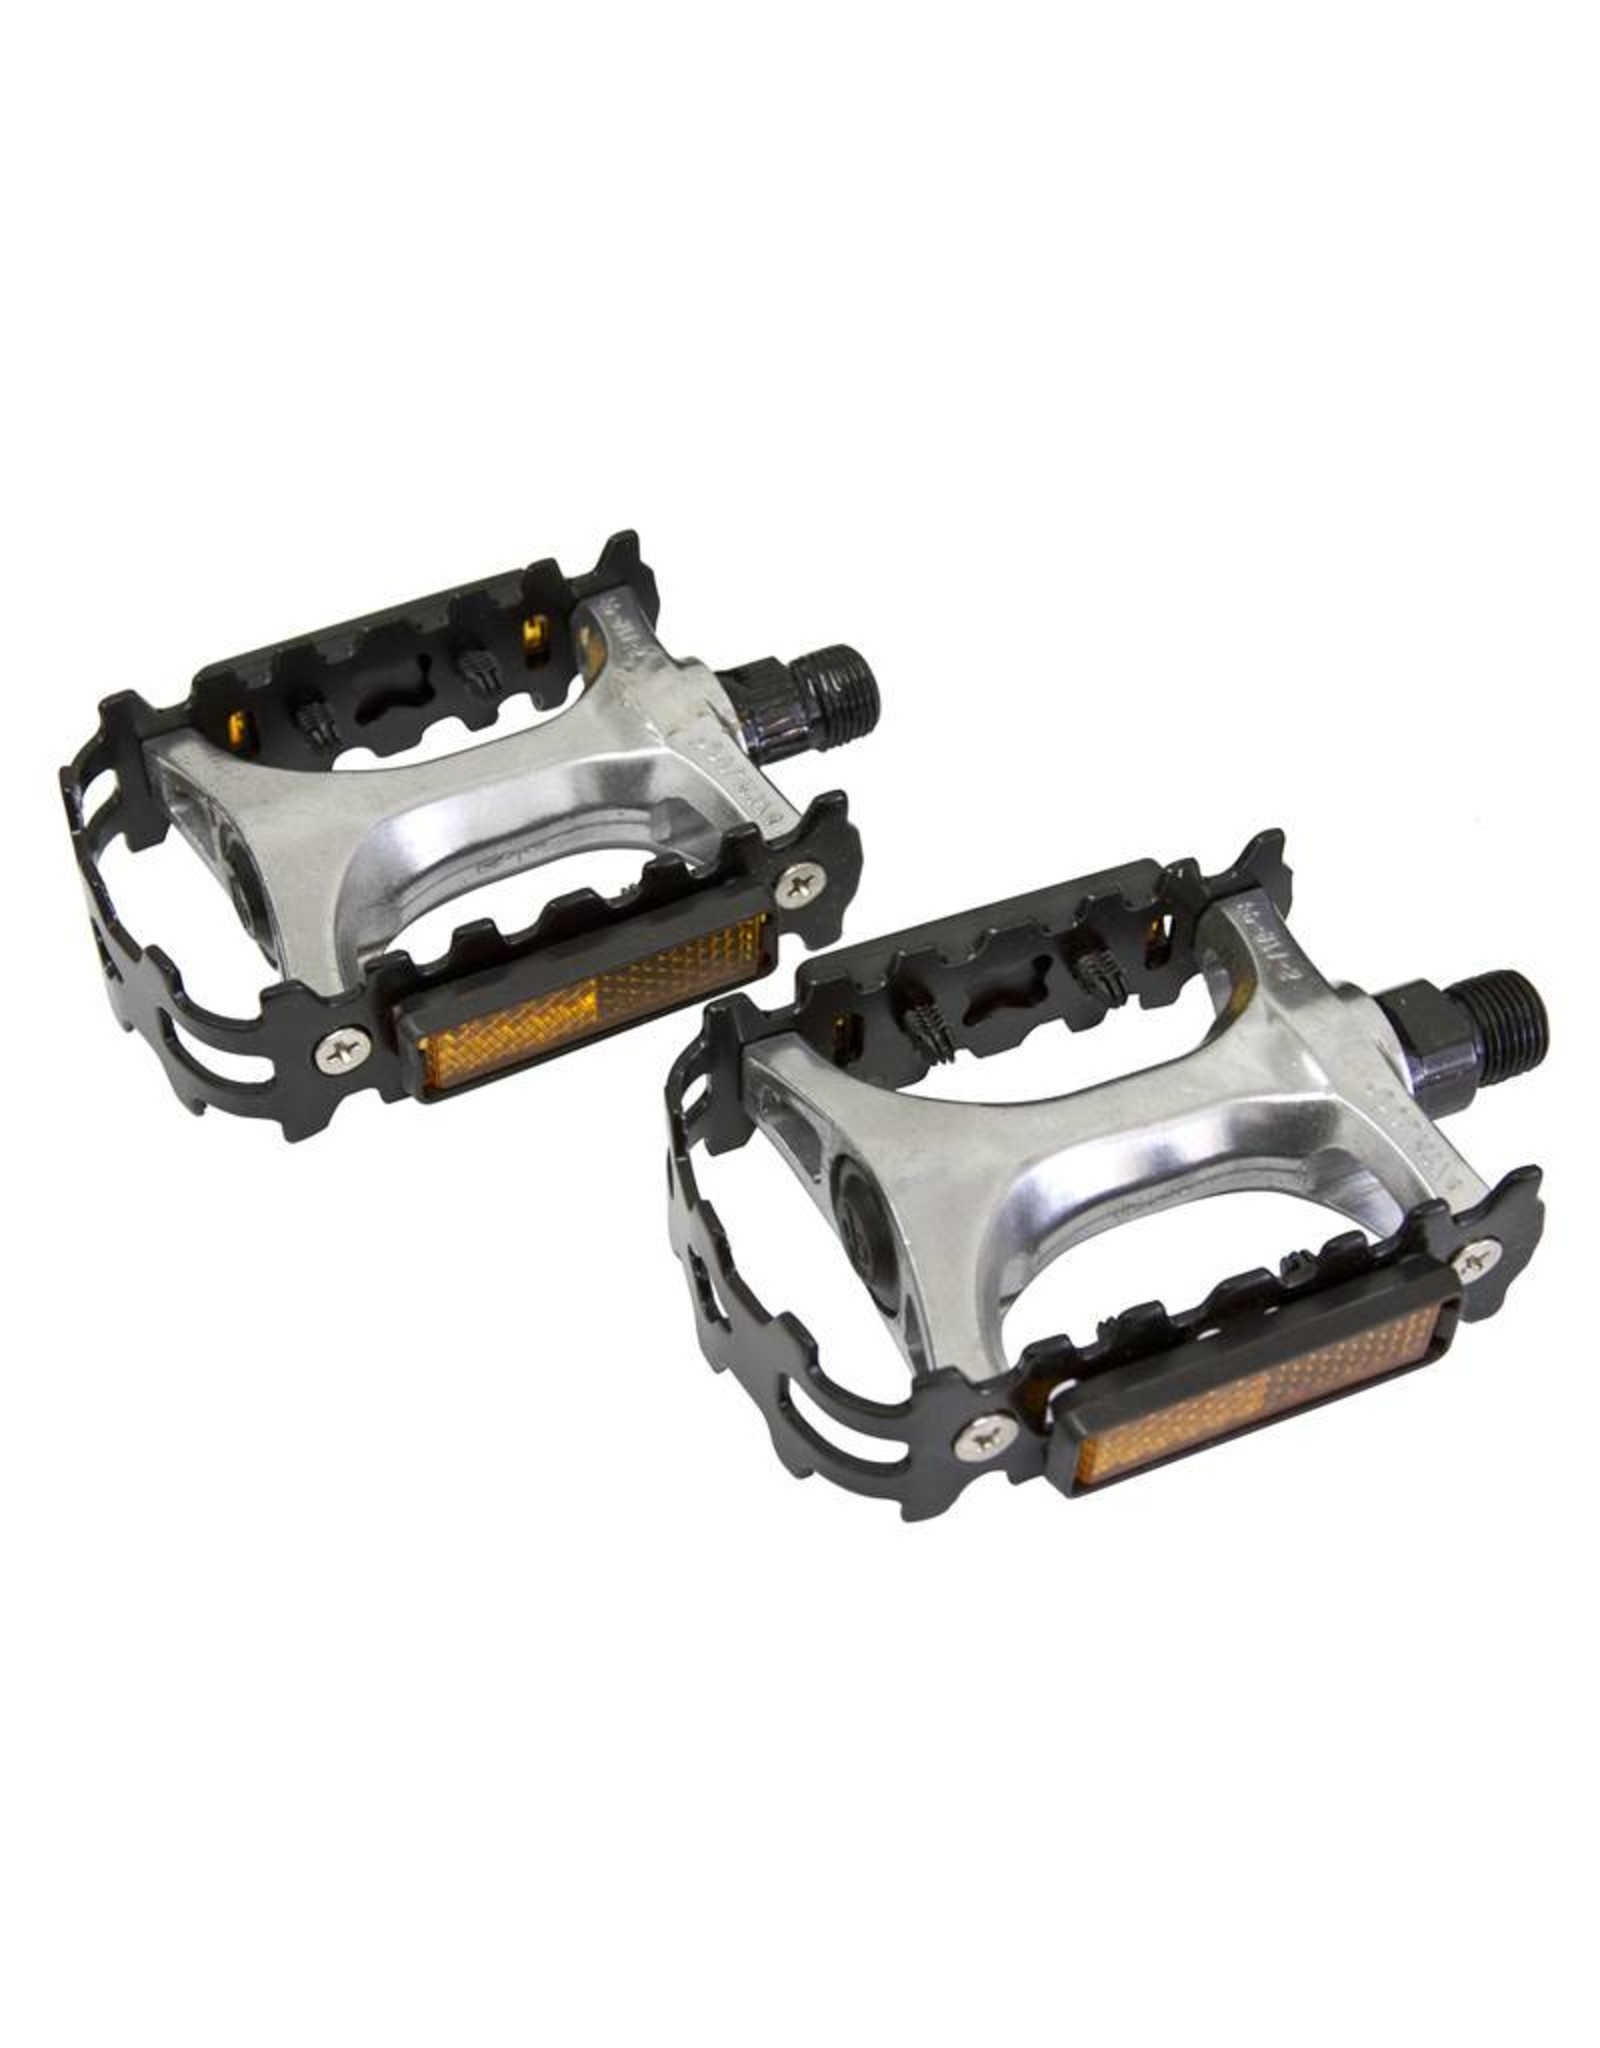 Damco Alloy / Steel Pedals